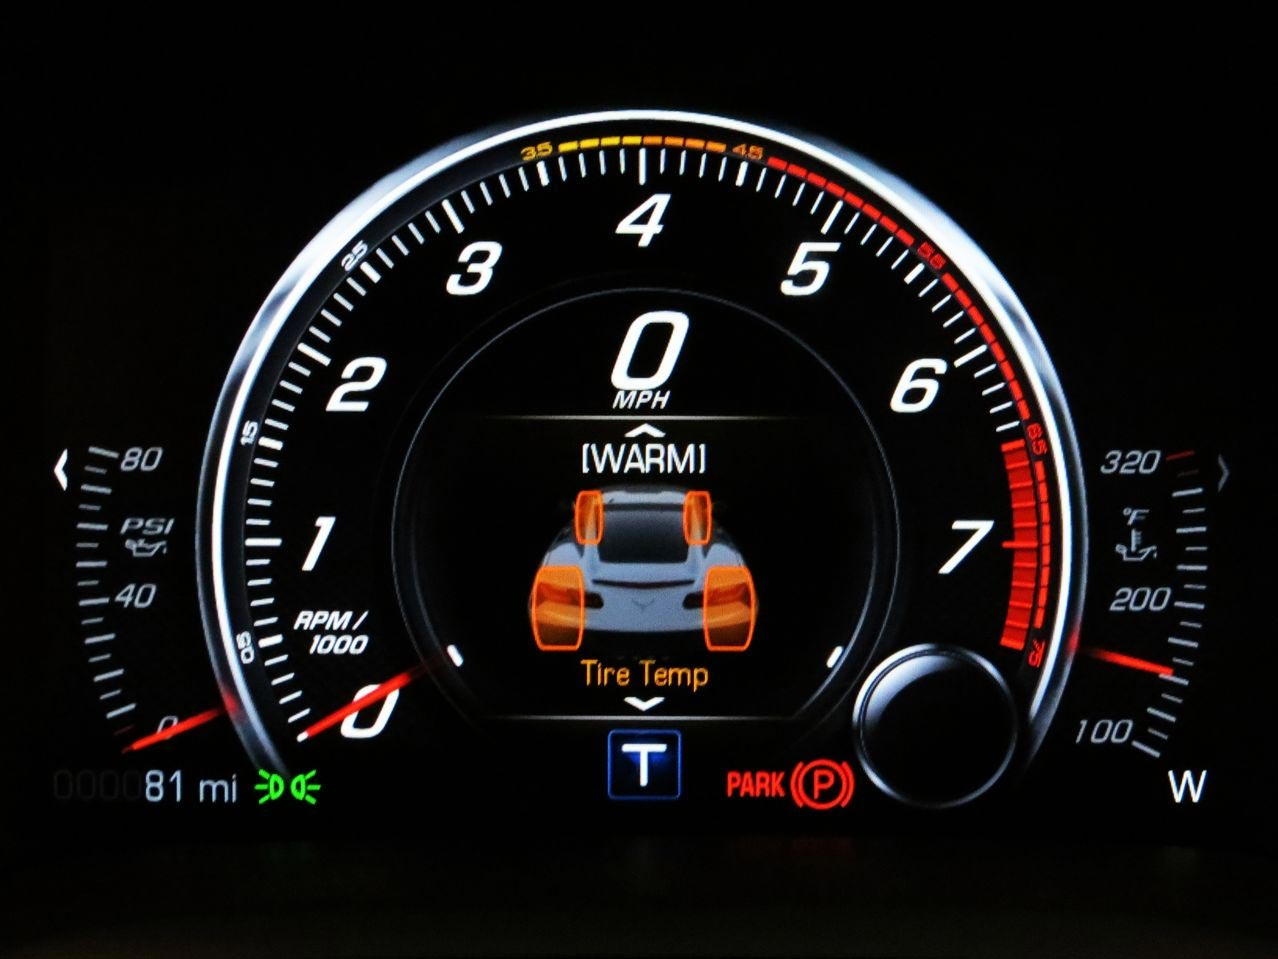 [VIDEO] GM Lets You Know When It's Okay to Redline Your New 2014 Corvette Stingray